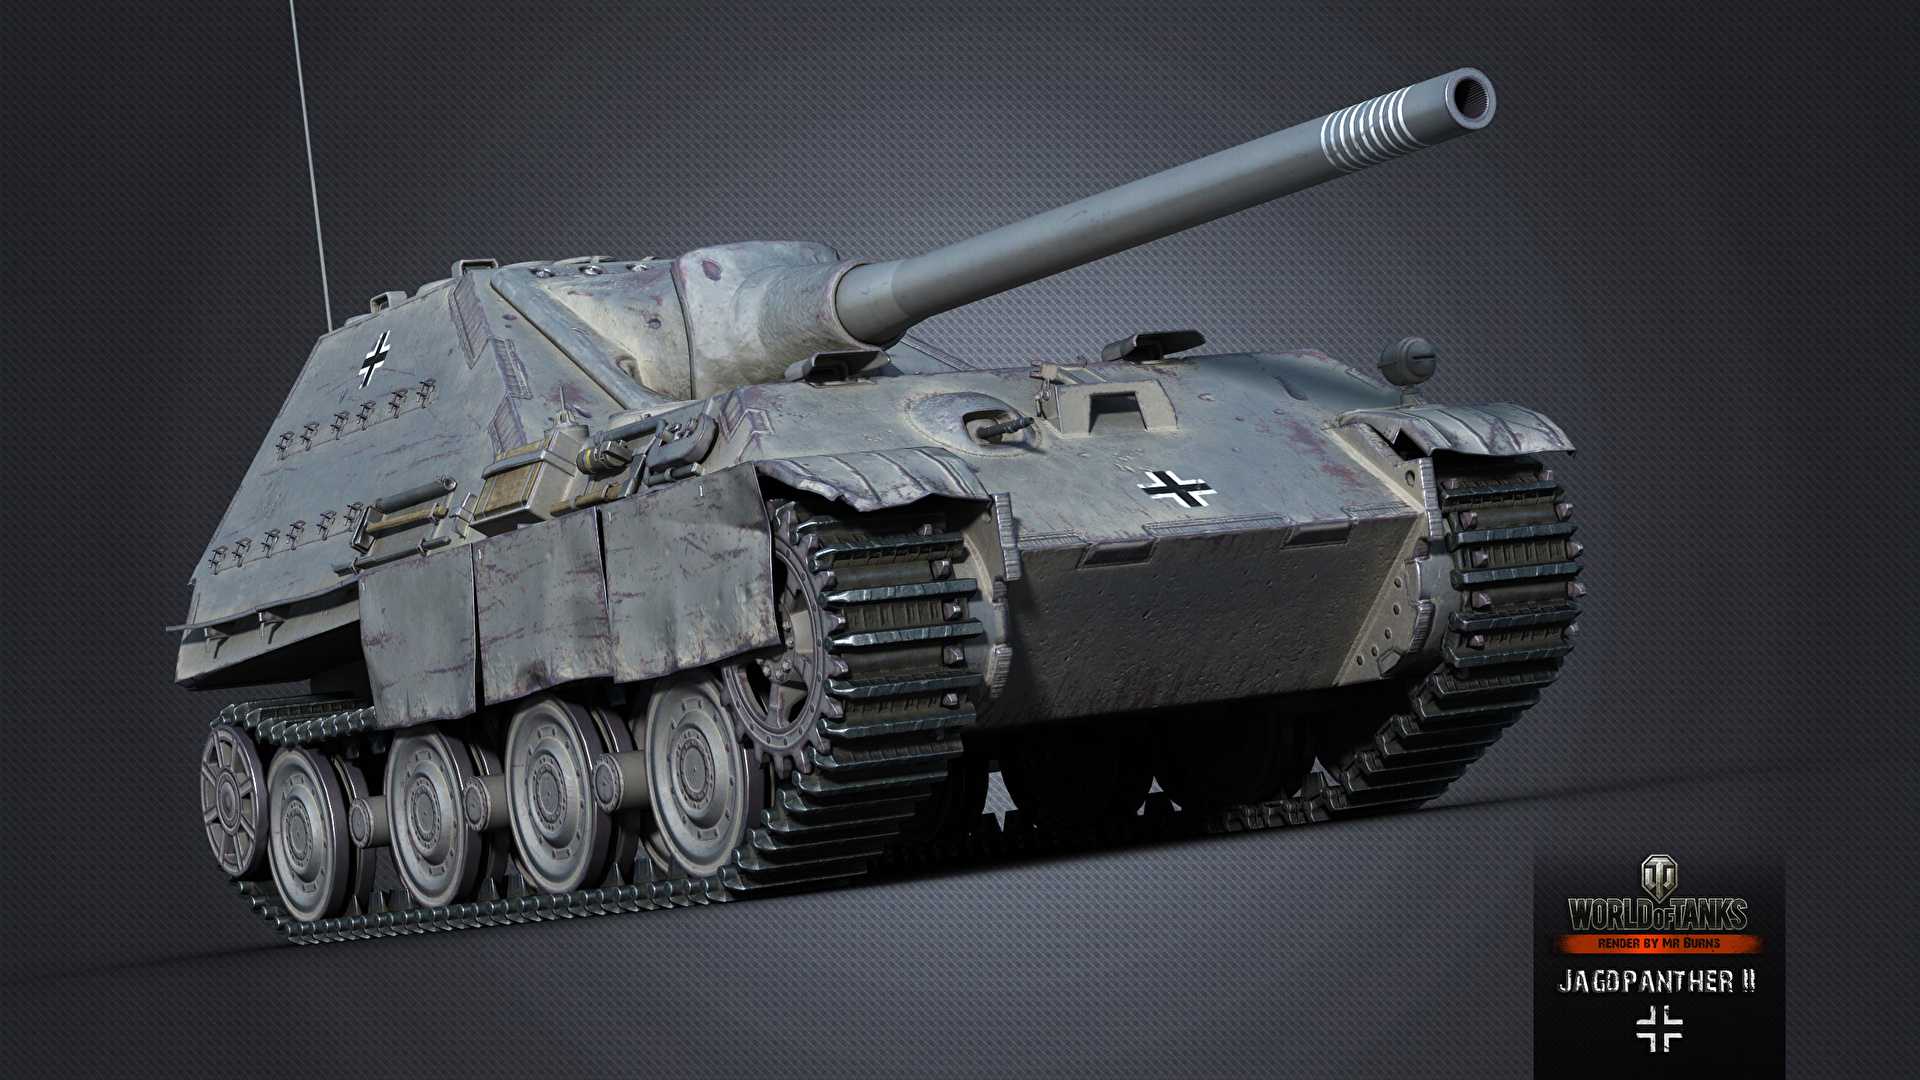 Images WOT SPG Jagdpanther II vdeo game 1920x1080 1920x1080